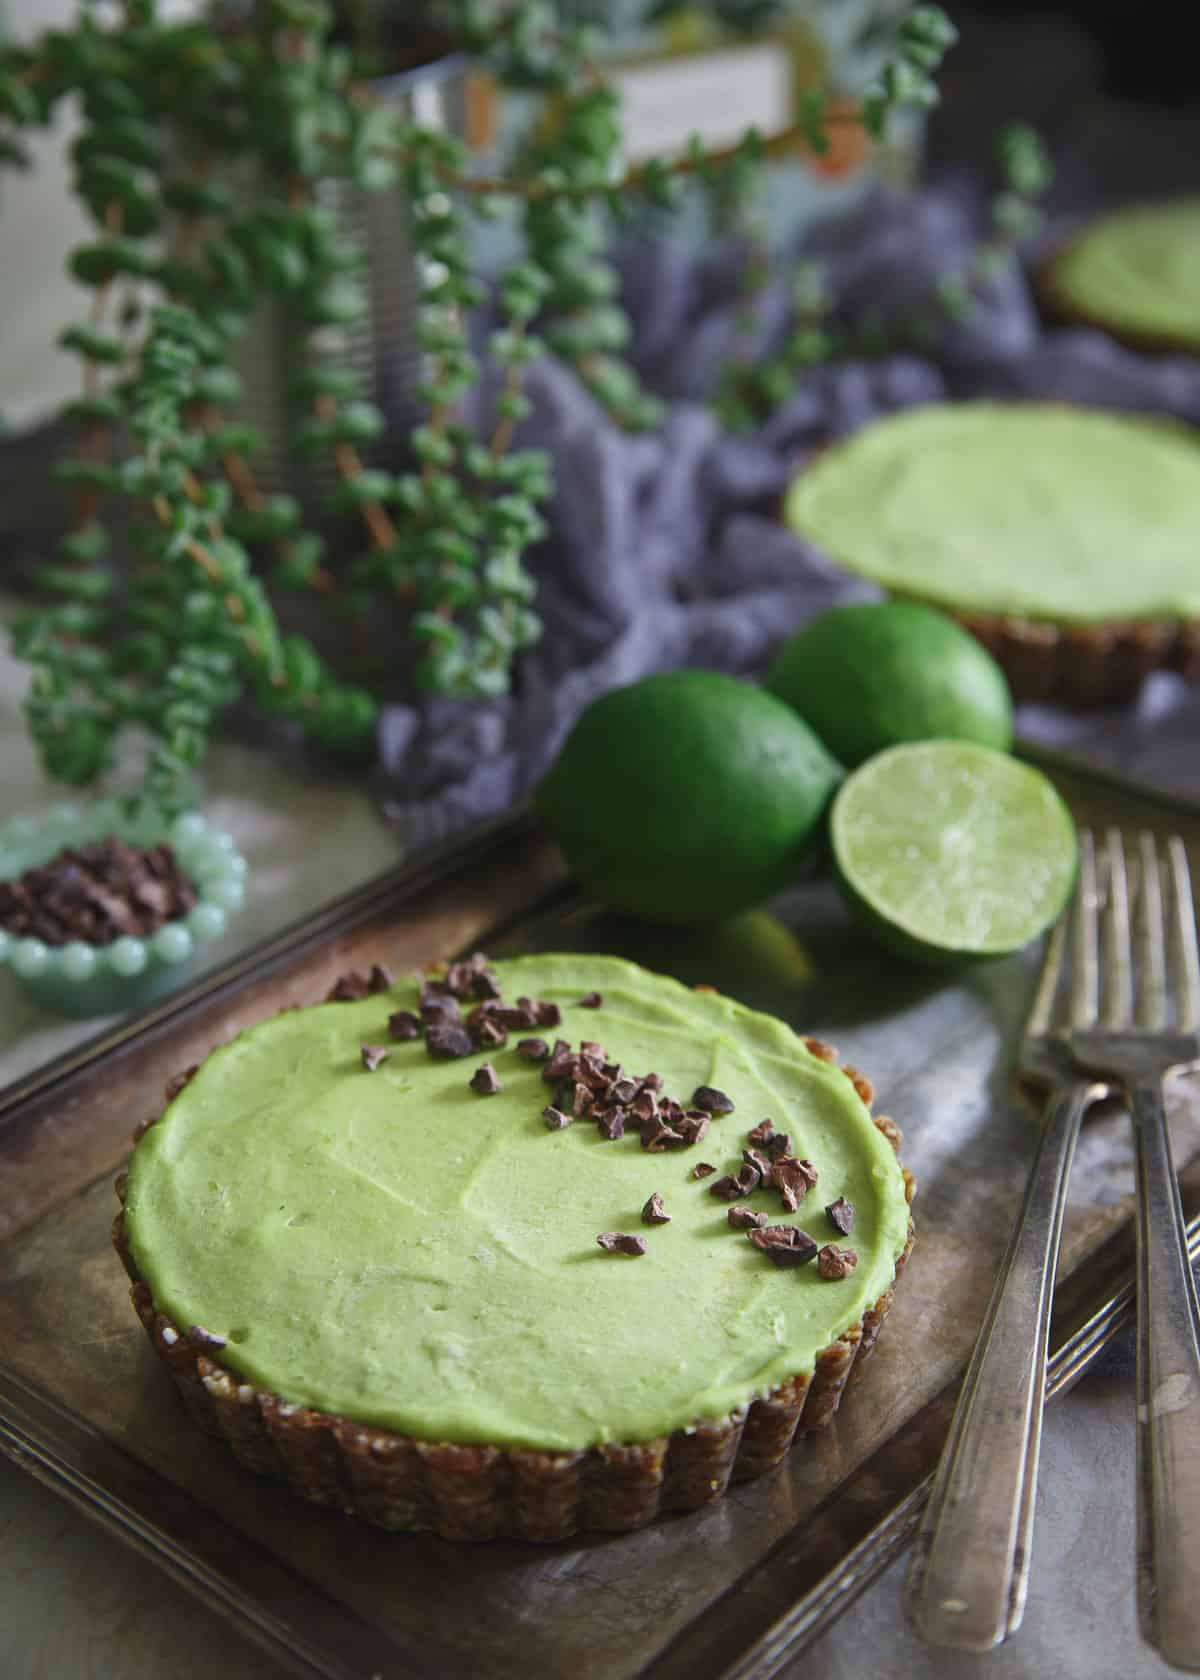 This avocado tart full of zesty lime flavor, no bake, paleo, grain free and gluten free makes the perfect refreshing summer treat!